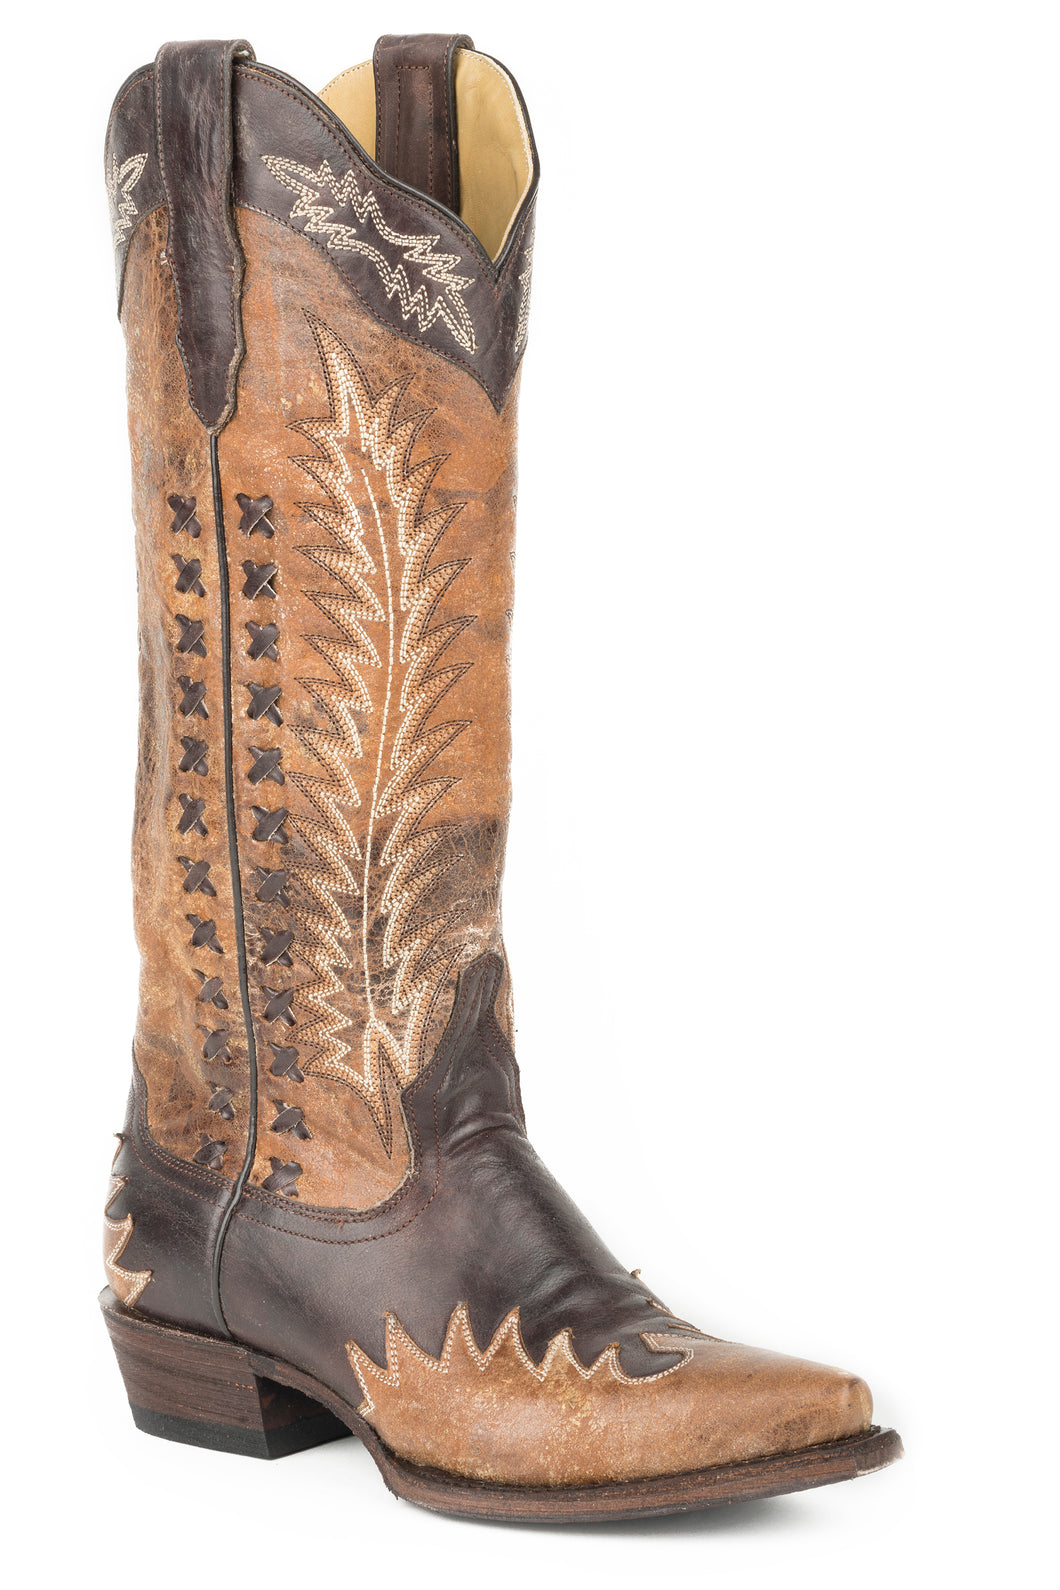 Morgan Boot Womens Boots Brown Vmp Crackle Gold 15